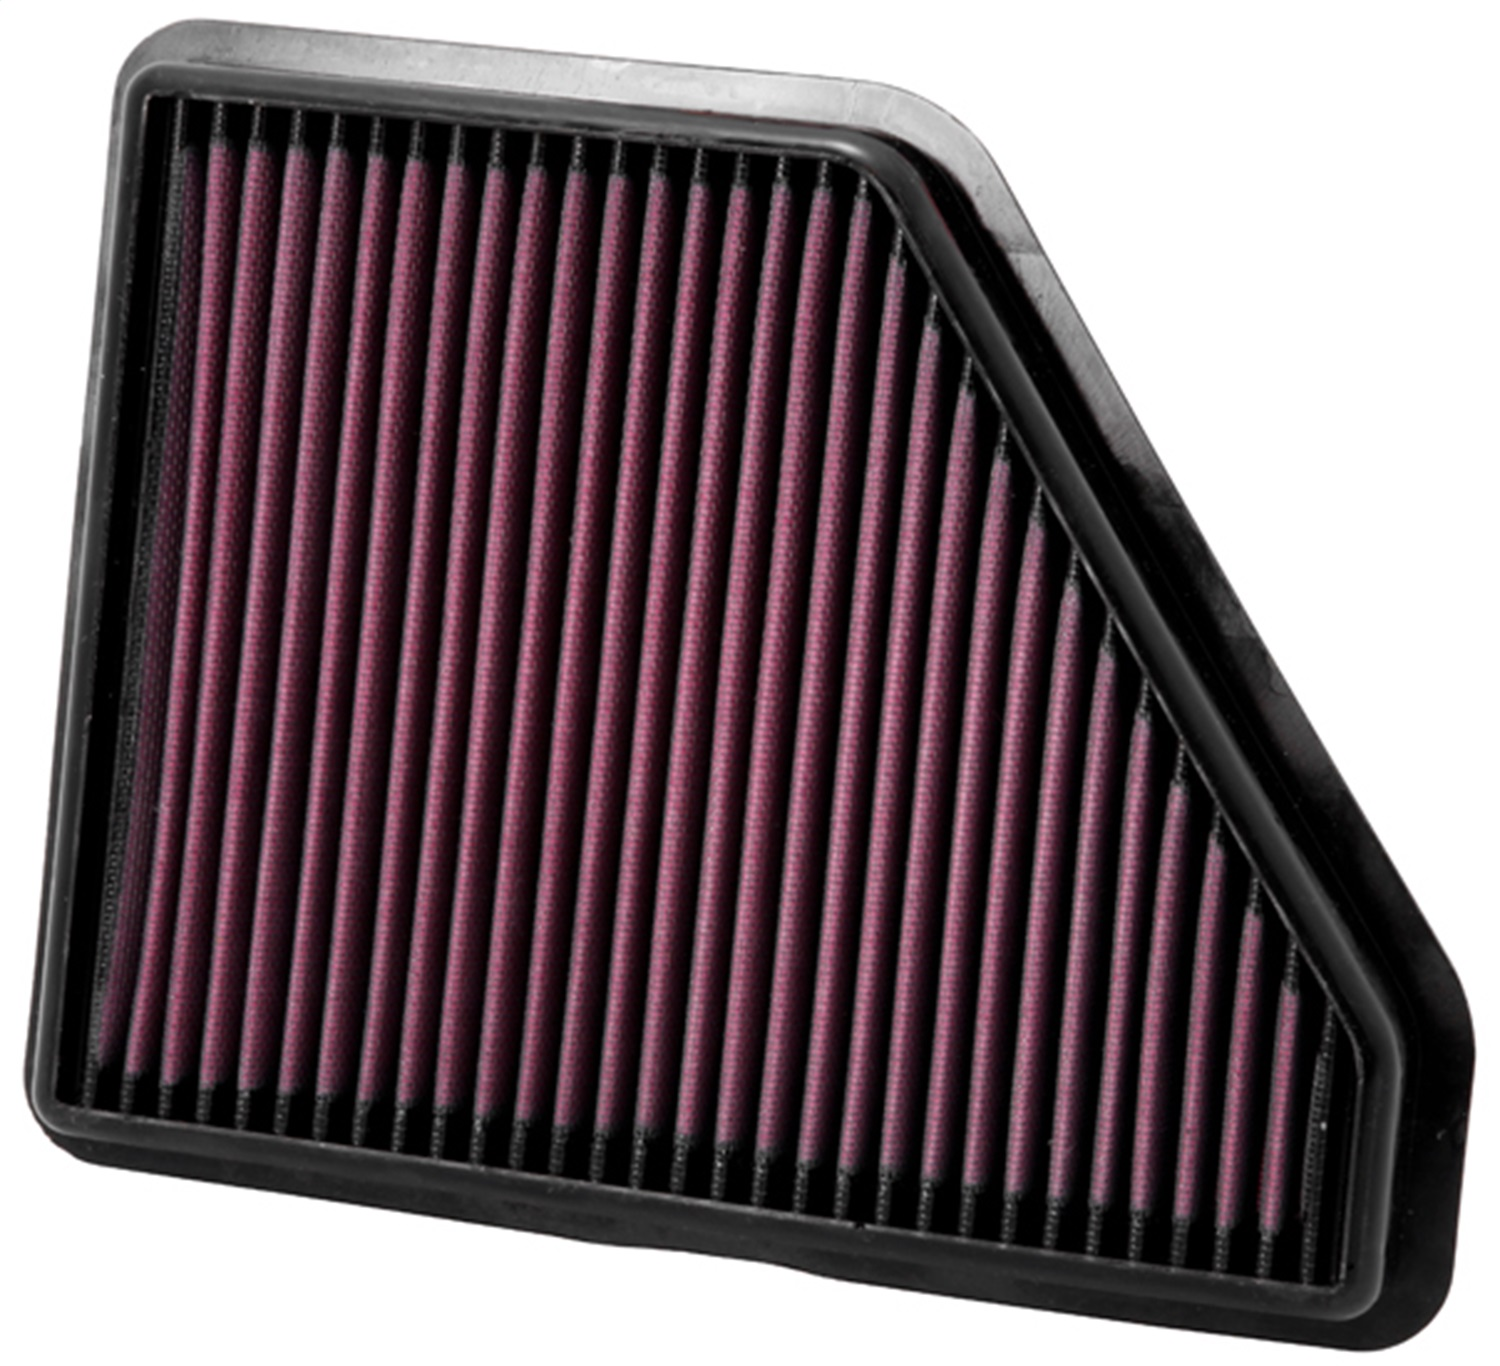 K&N Filters 33-2439 Air Filter Fits 10-14 Equinox Terrain 33-2439